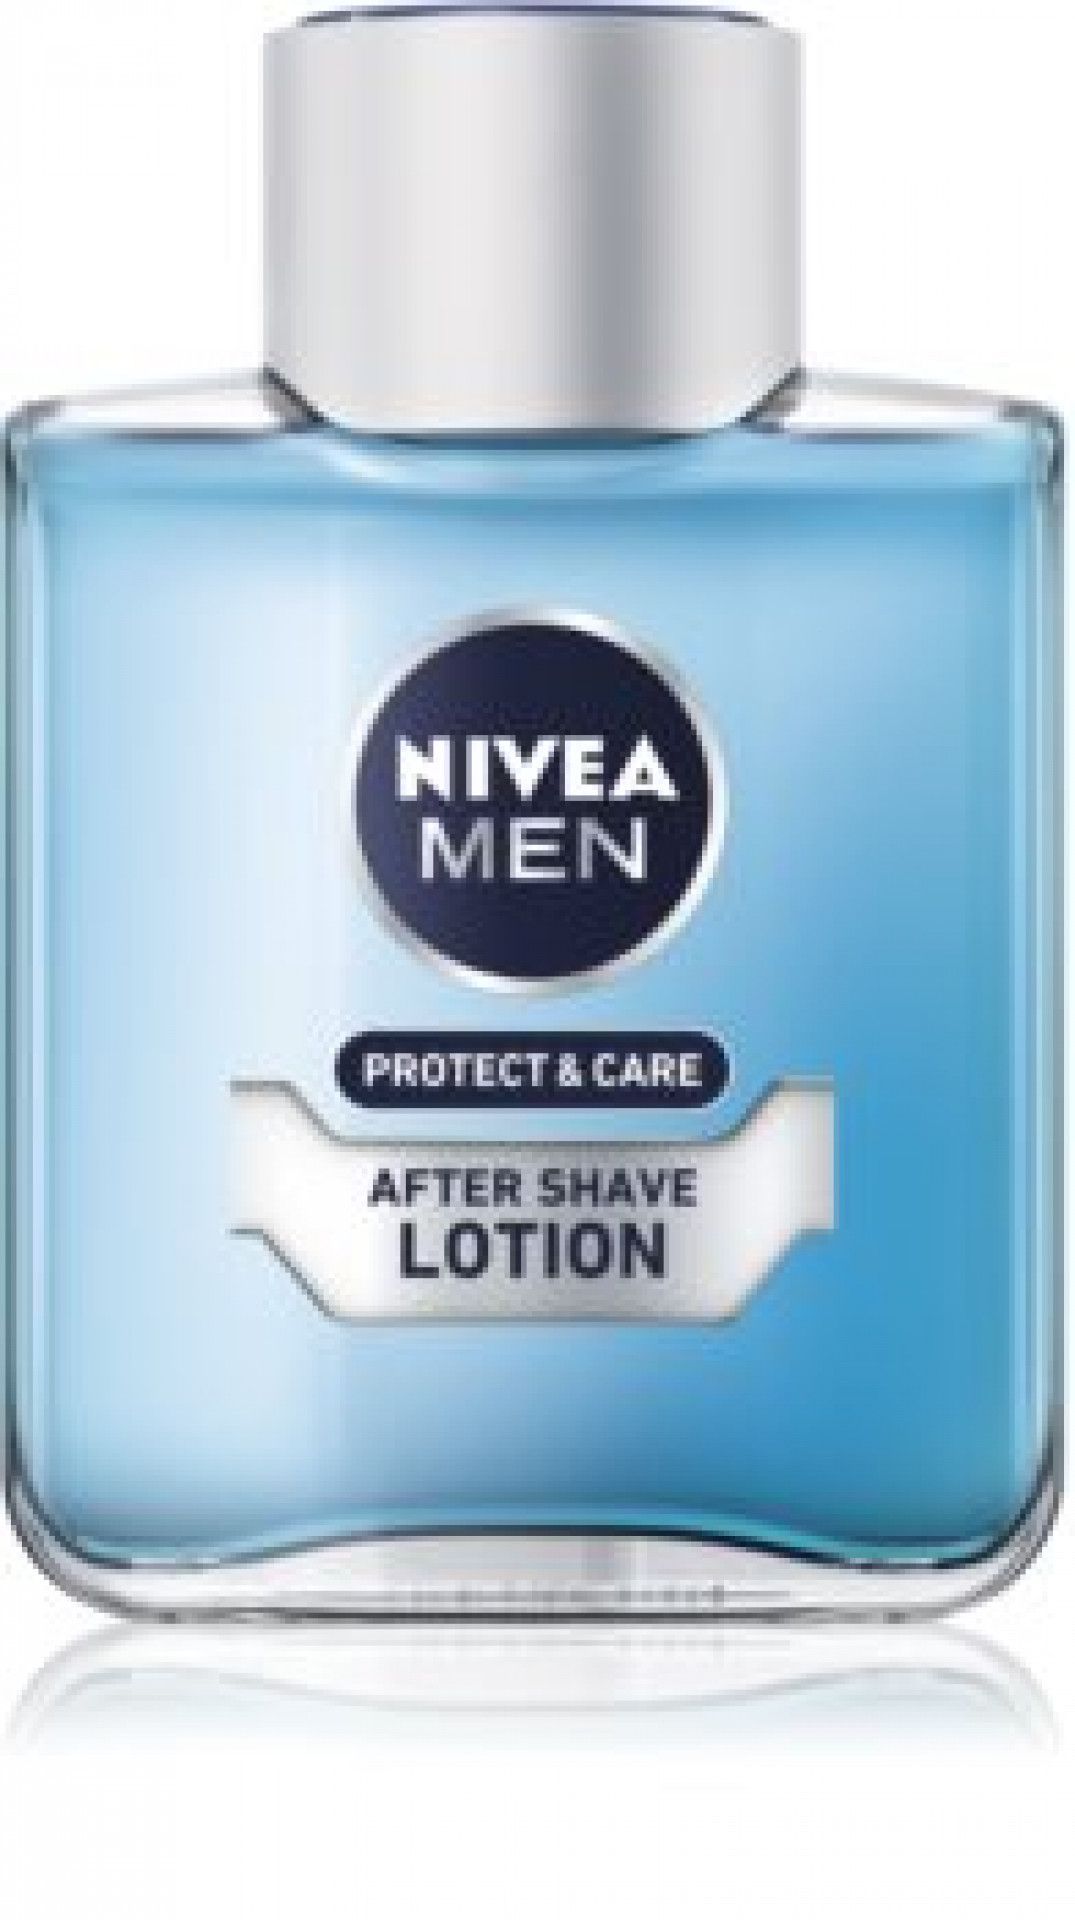 Nivea Men Protect & Care Aftershave Water